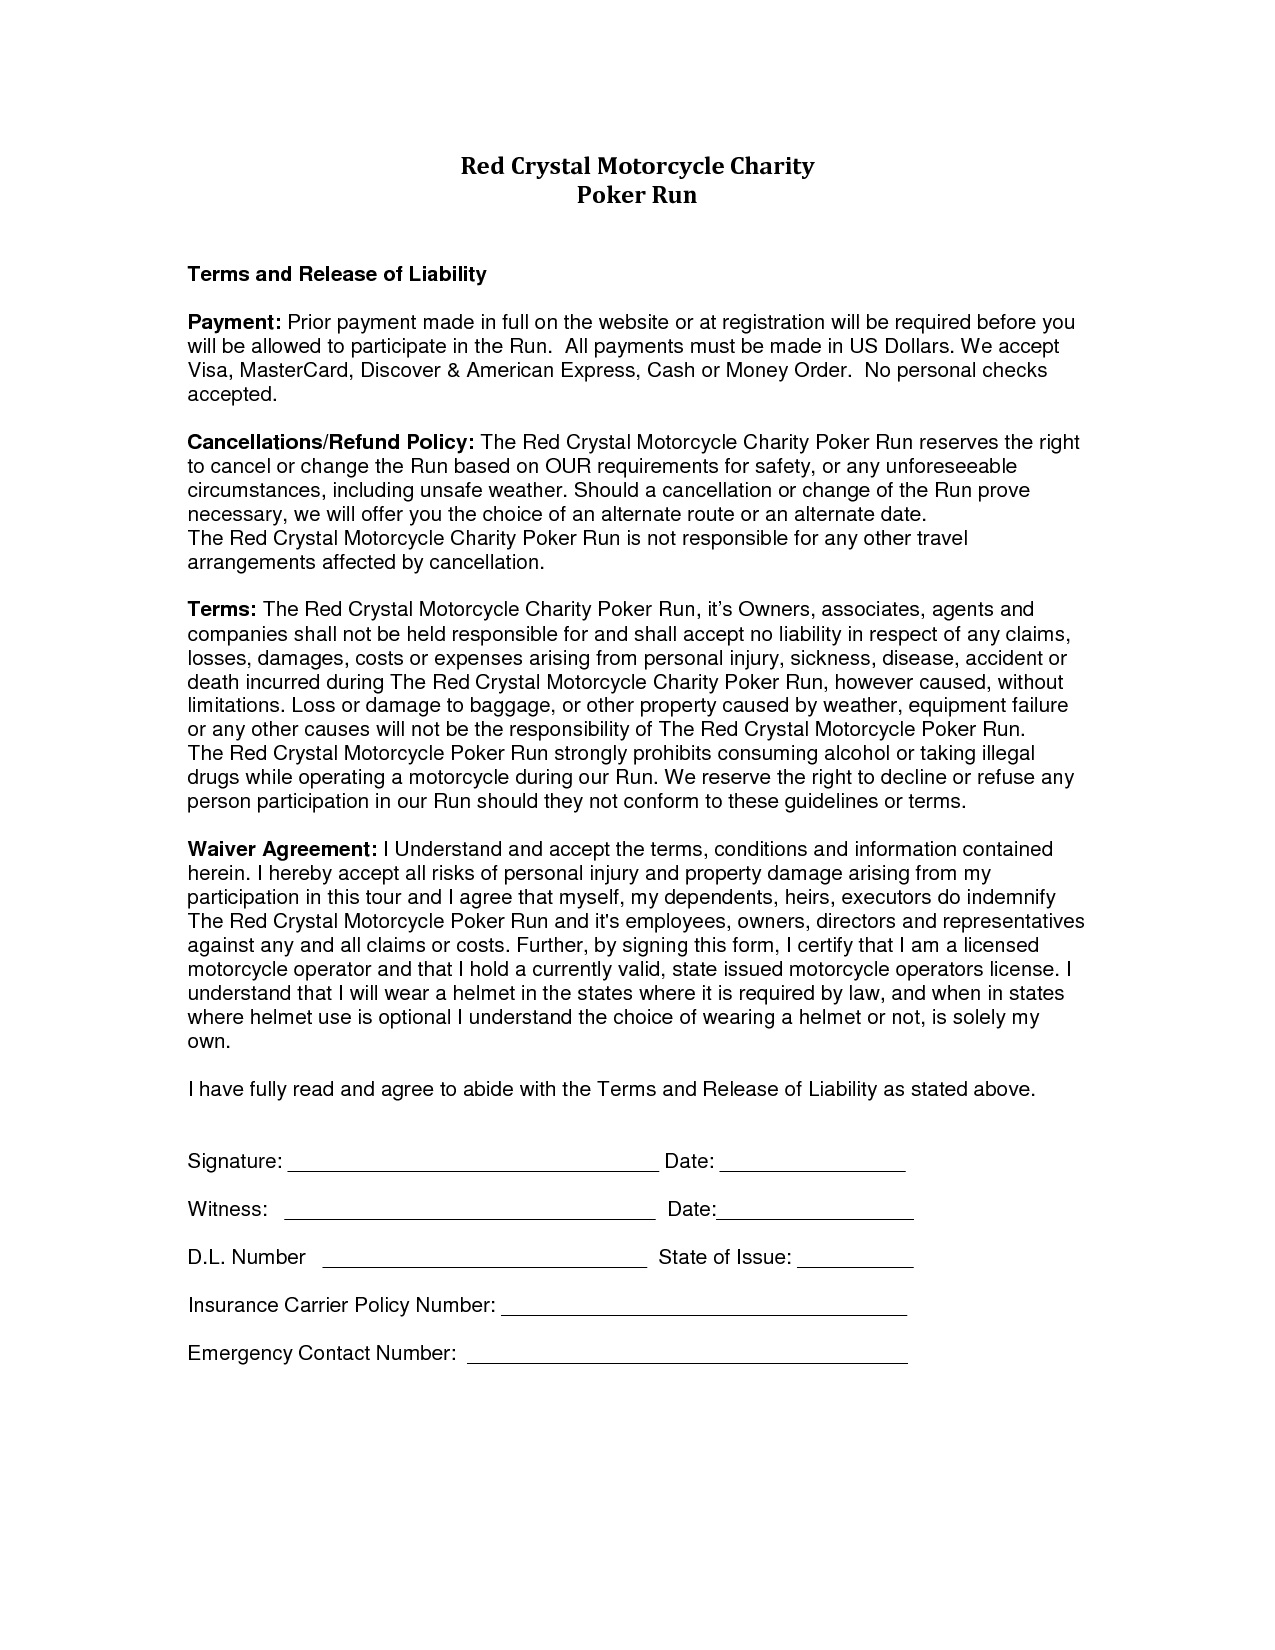 Equipment Liability Release Form Template - Invitation Templates ...